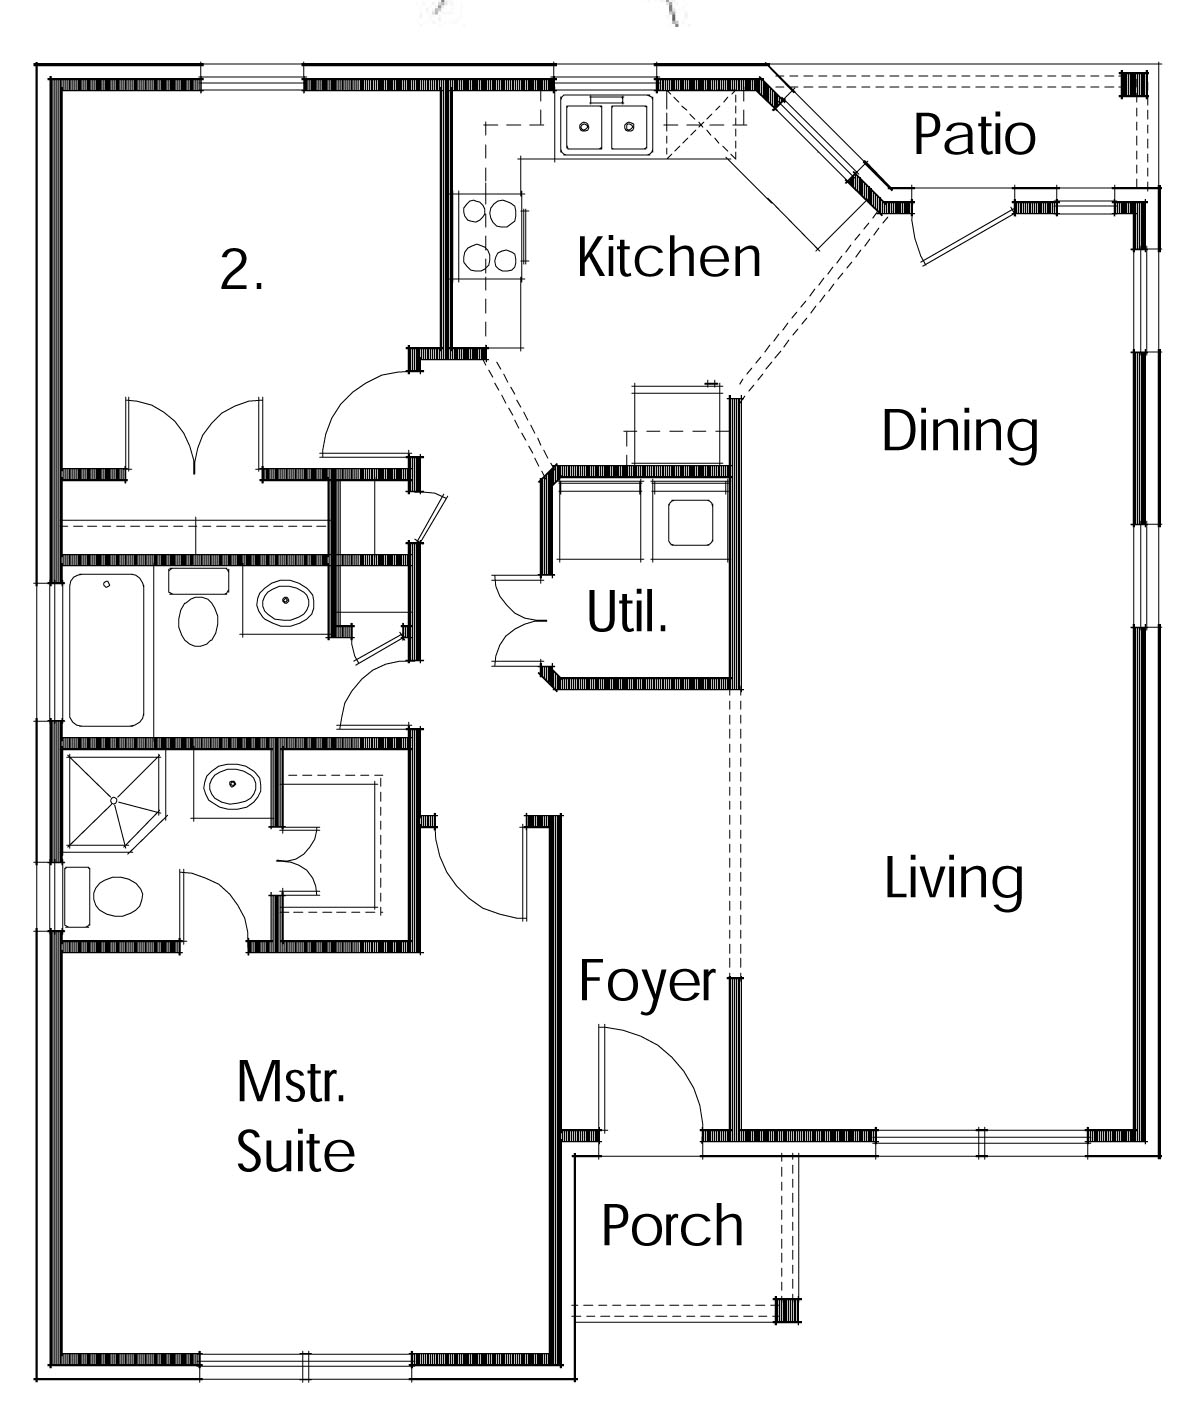 Small houses house plans and home design on pinterest for Simple easy to build house plans